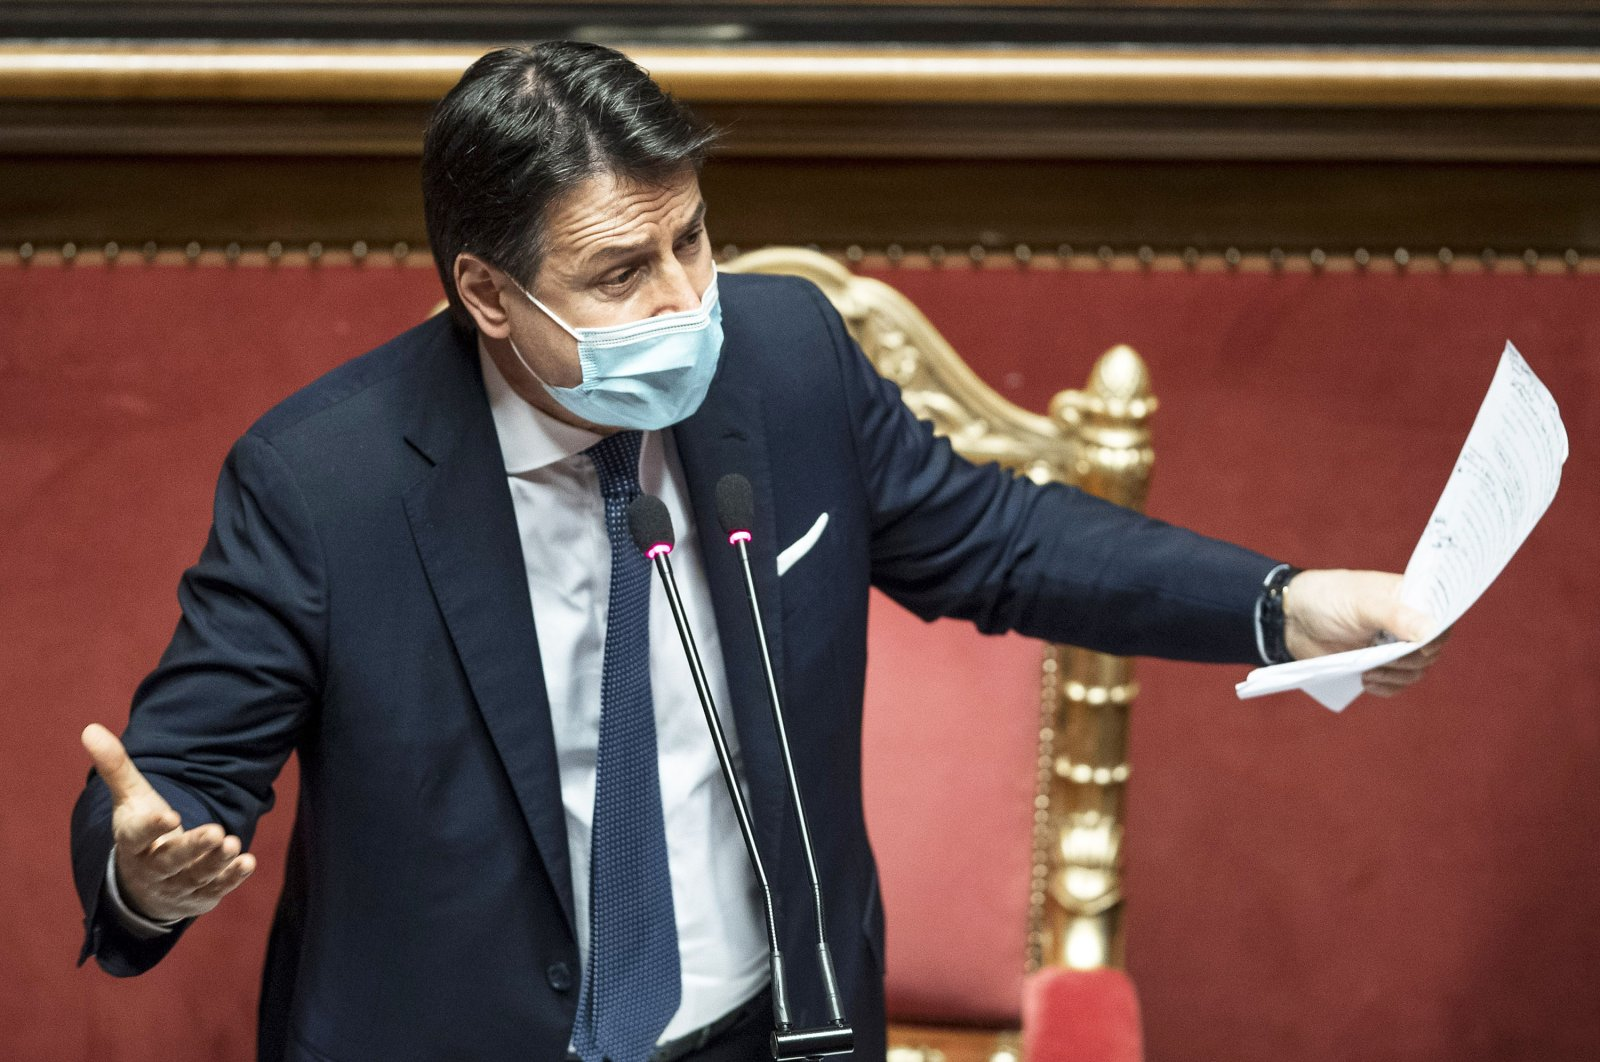 Italy's Prime Minister Giuseppe Conte speaks prior to a confidence vote at the Italian Senate, in Rome, Italy, on Jan. 19, 2021. (Getty Images)